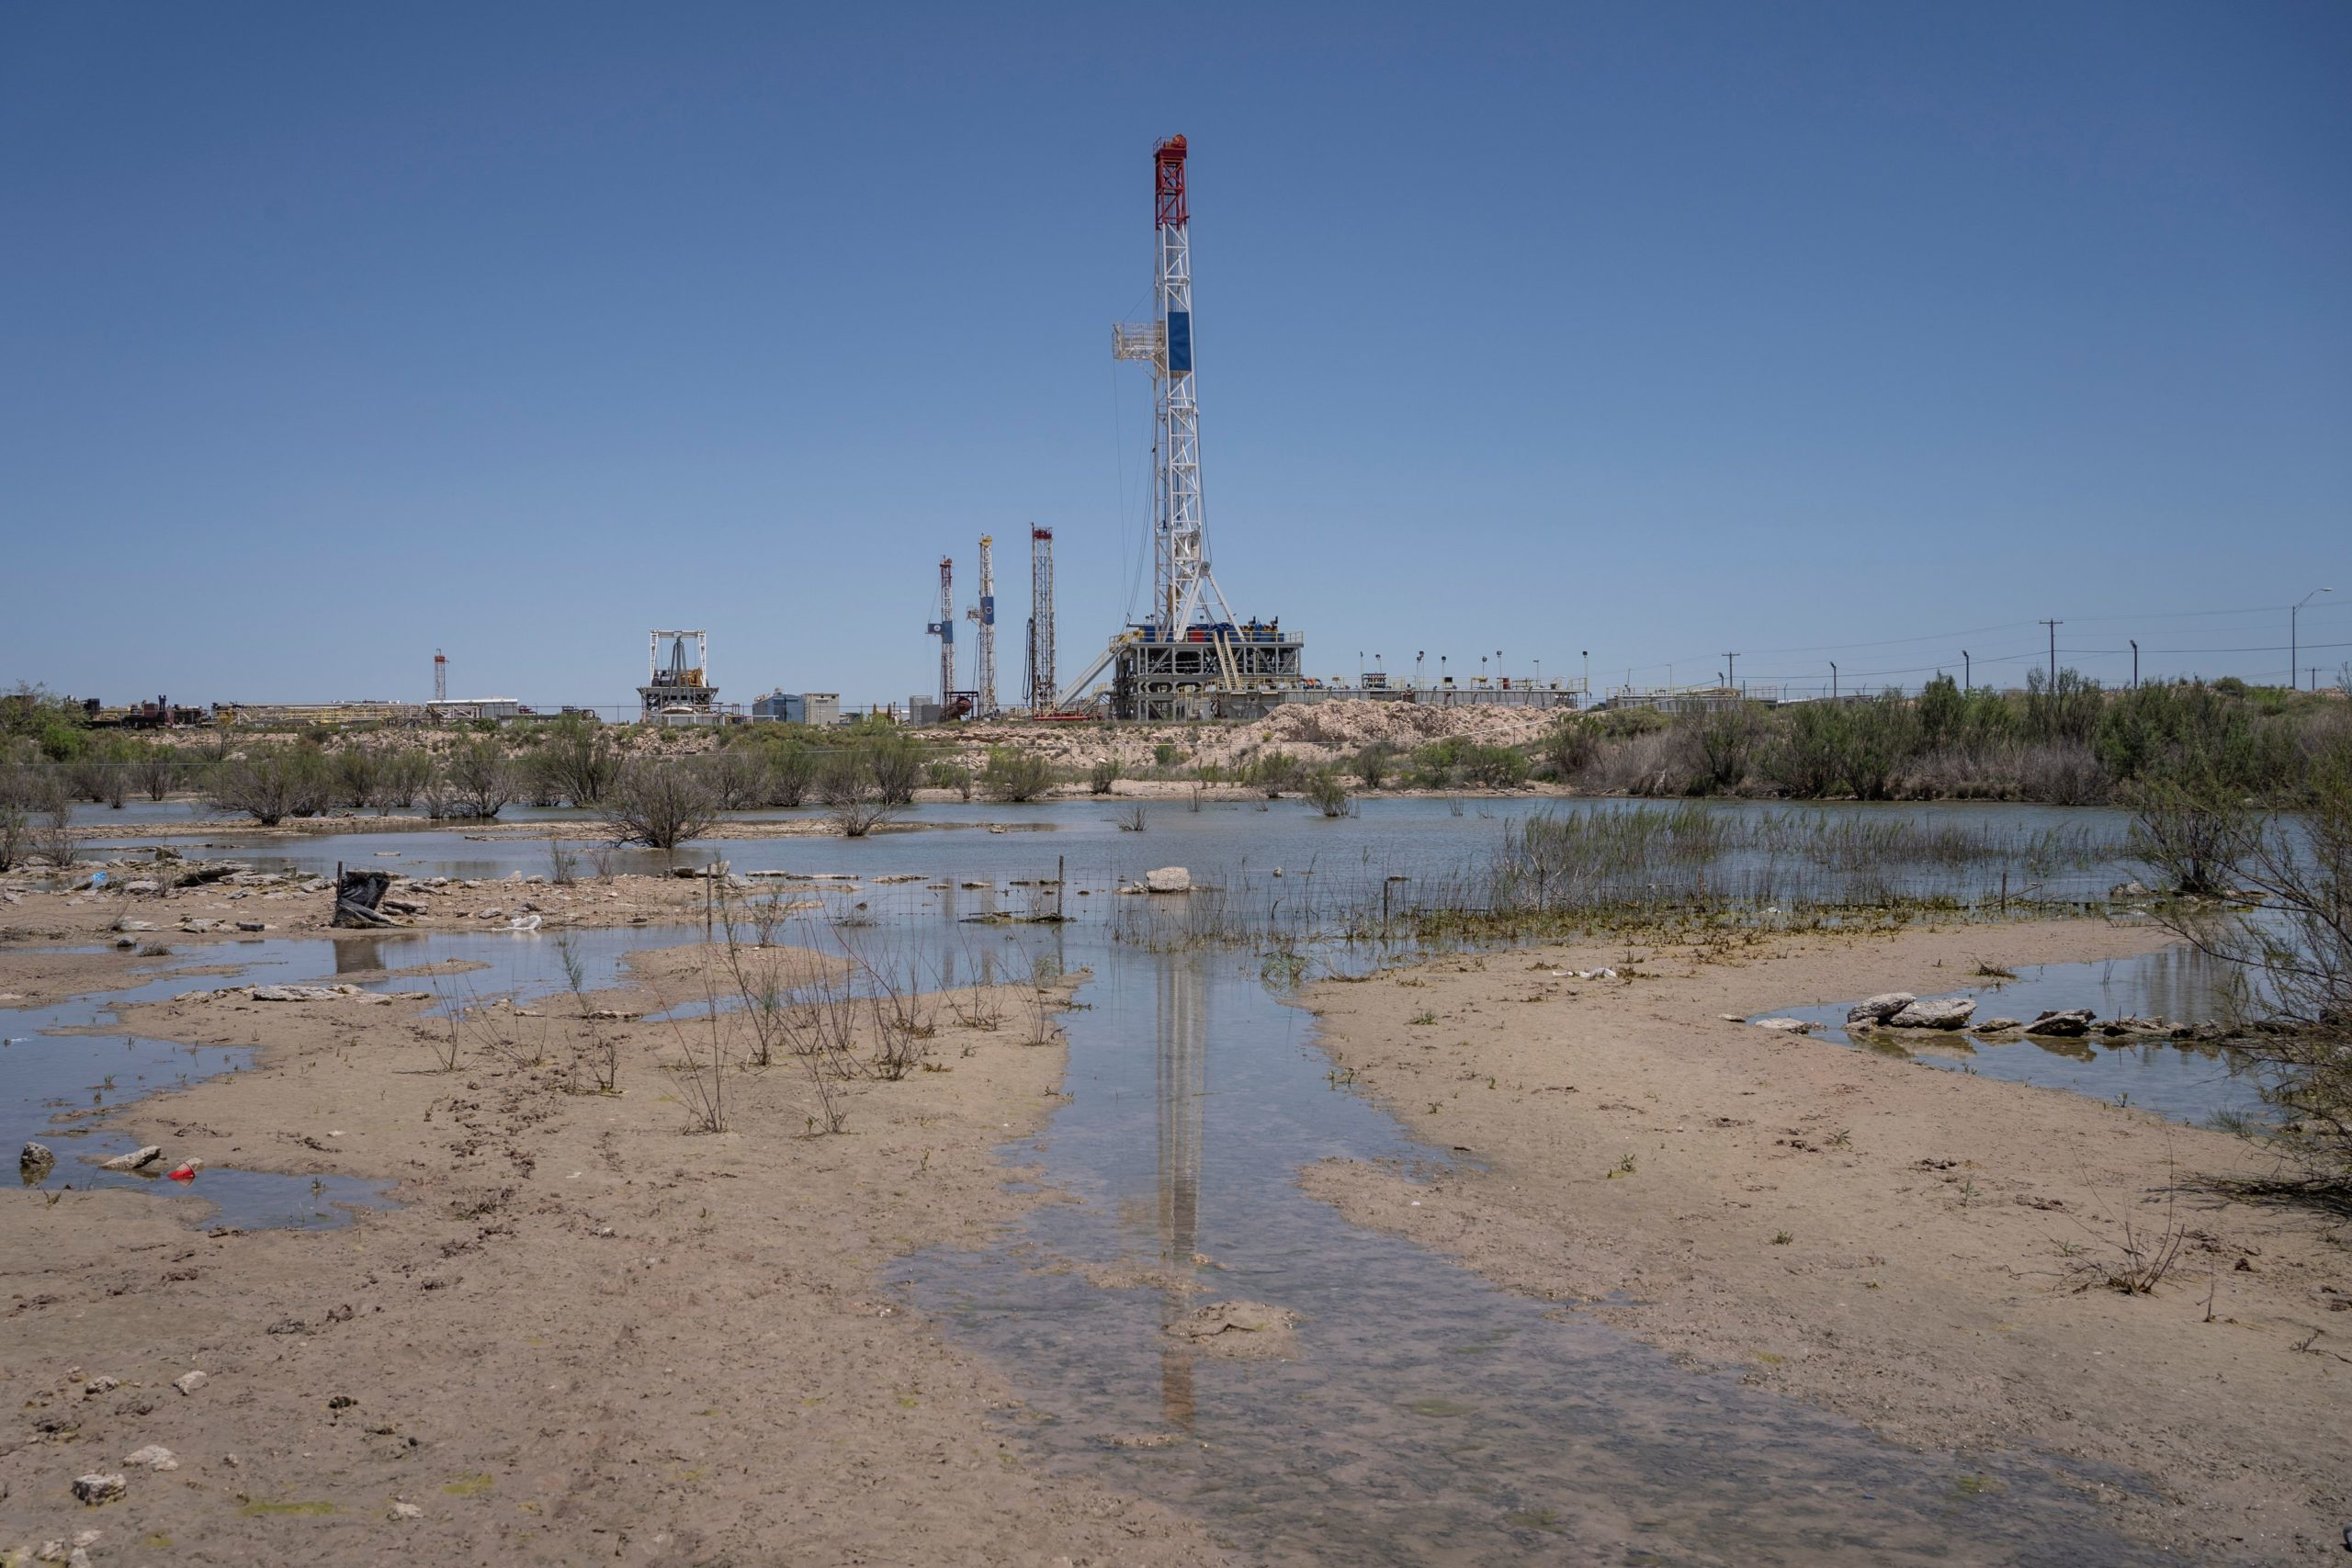 Oil rigs at Double K Drilling are pictured on April 24, 2020 near Odessa, Texas. - Oil and gas is one of the main economic drivers of this area, and the industry has taken a hit after the price of oil dropped below zero earlier this week due to decline in demand from the novel coronavirus pandemic and a price war between Russia and Saudi Arabia. (Photo by Paul Ratje / AFP) (Photo by PAUL RATJE/AFP via Getty Images)